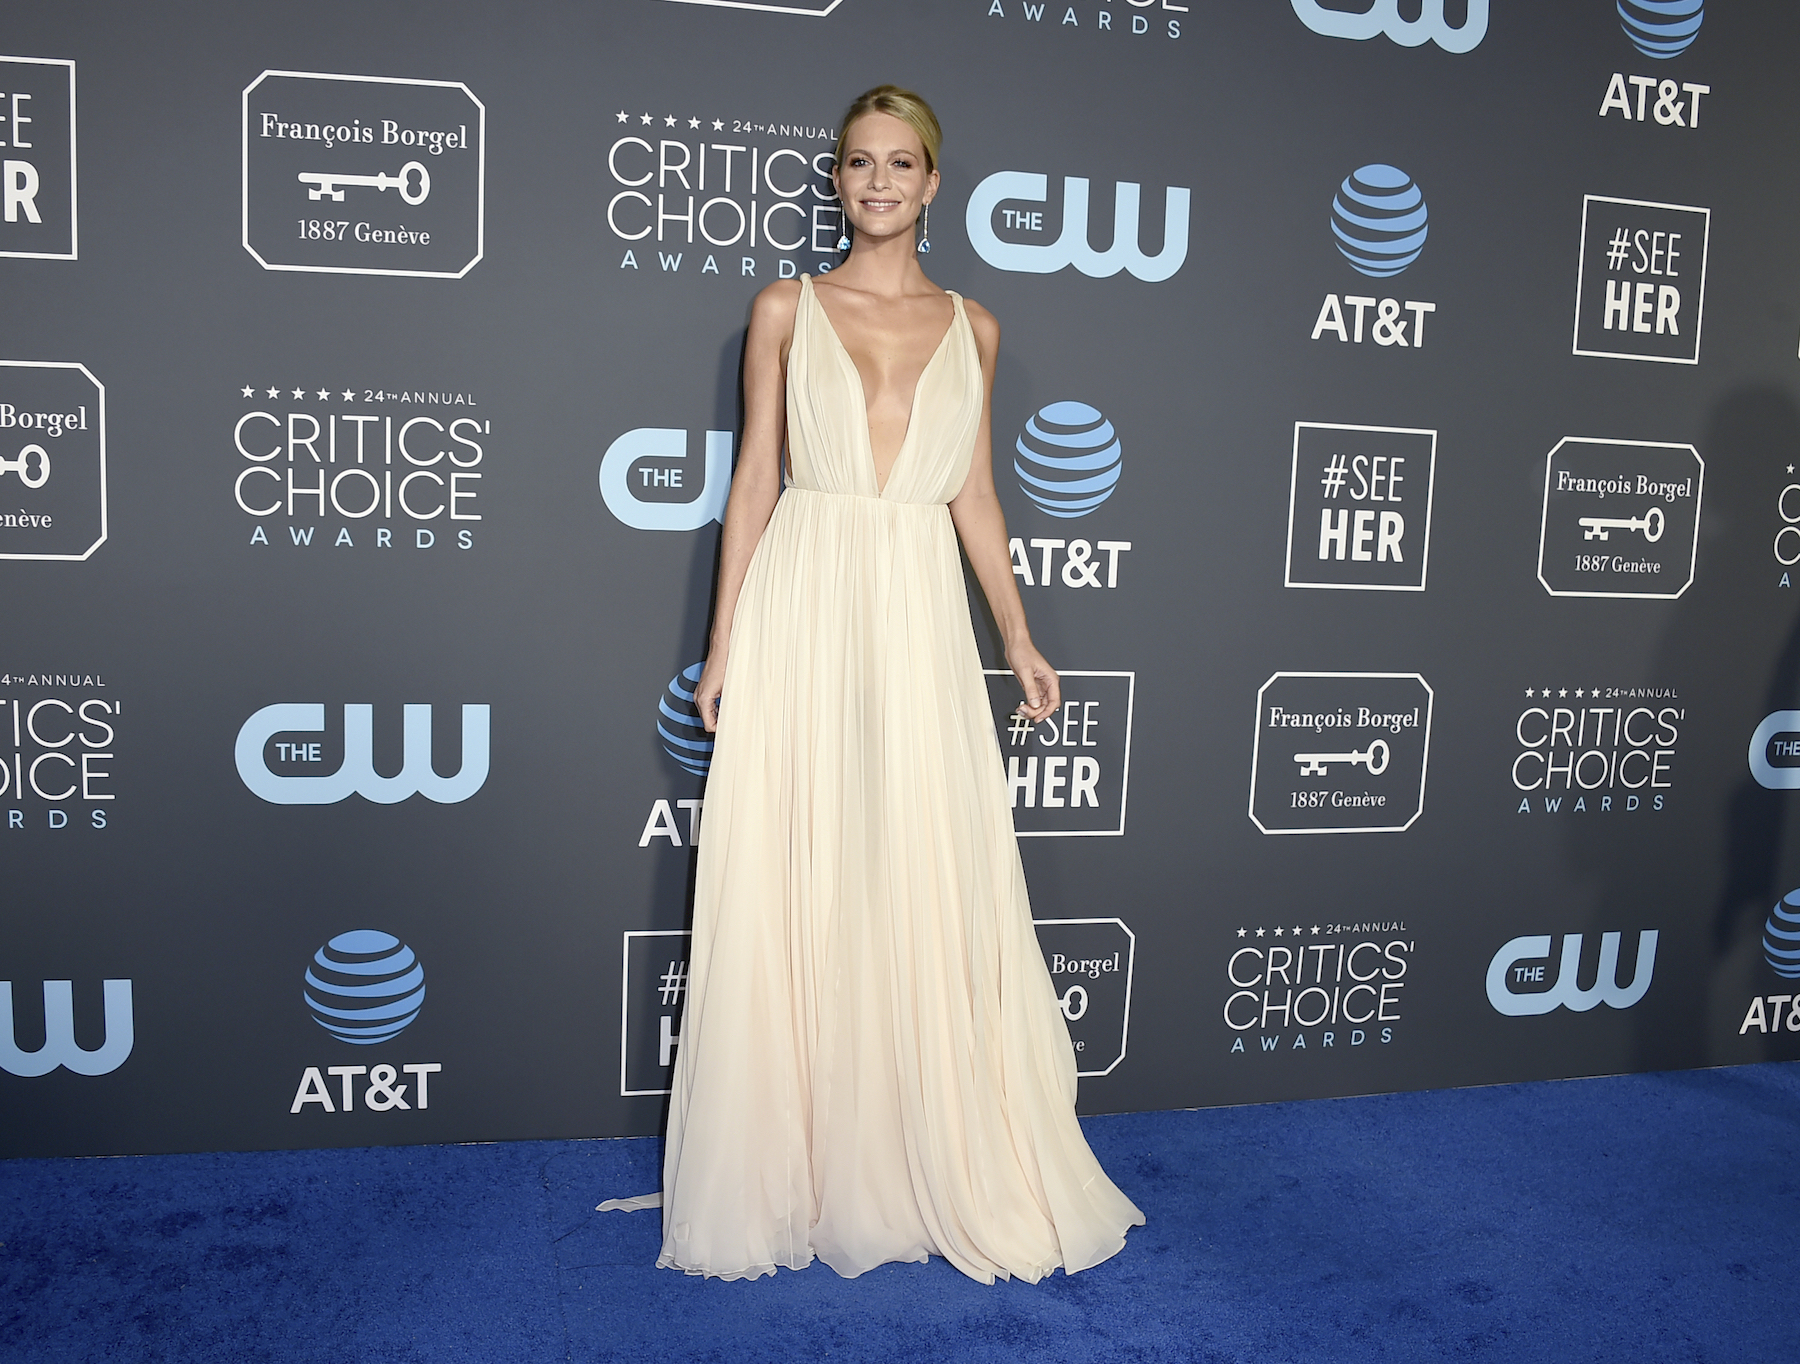 <div class='meta'><div class='origin-logo' data-origin='AP'></div><span class='caption-text' data-credit='Jordan Strauss/Invision/AP'>Poppy Delevingne arrives at the 24th annual Critics' Choice Awards on Sunday, Jan. 13, 2019, at the Barker Hangar in Santa Monica, Calif.</span></div>